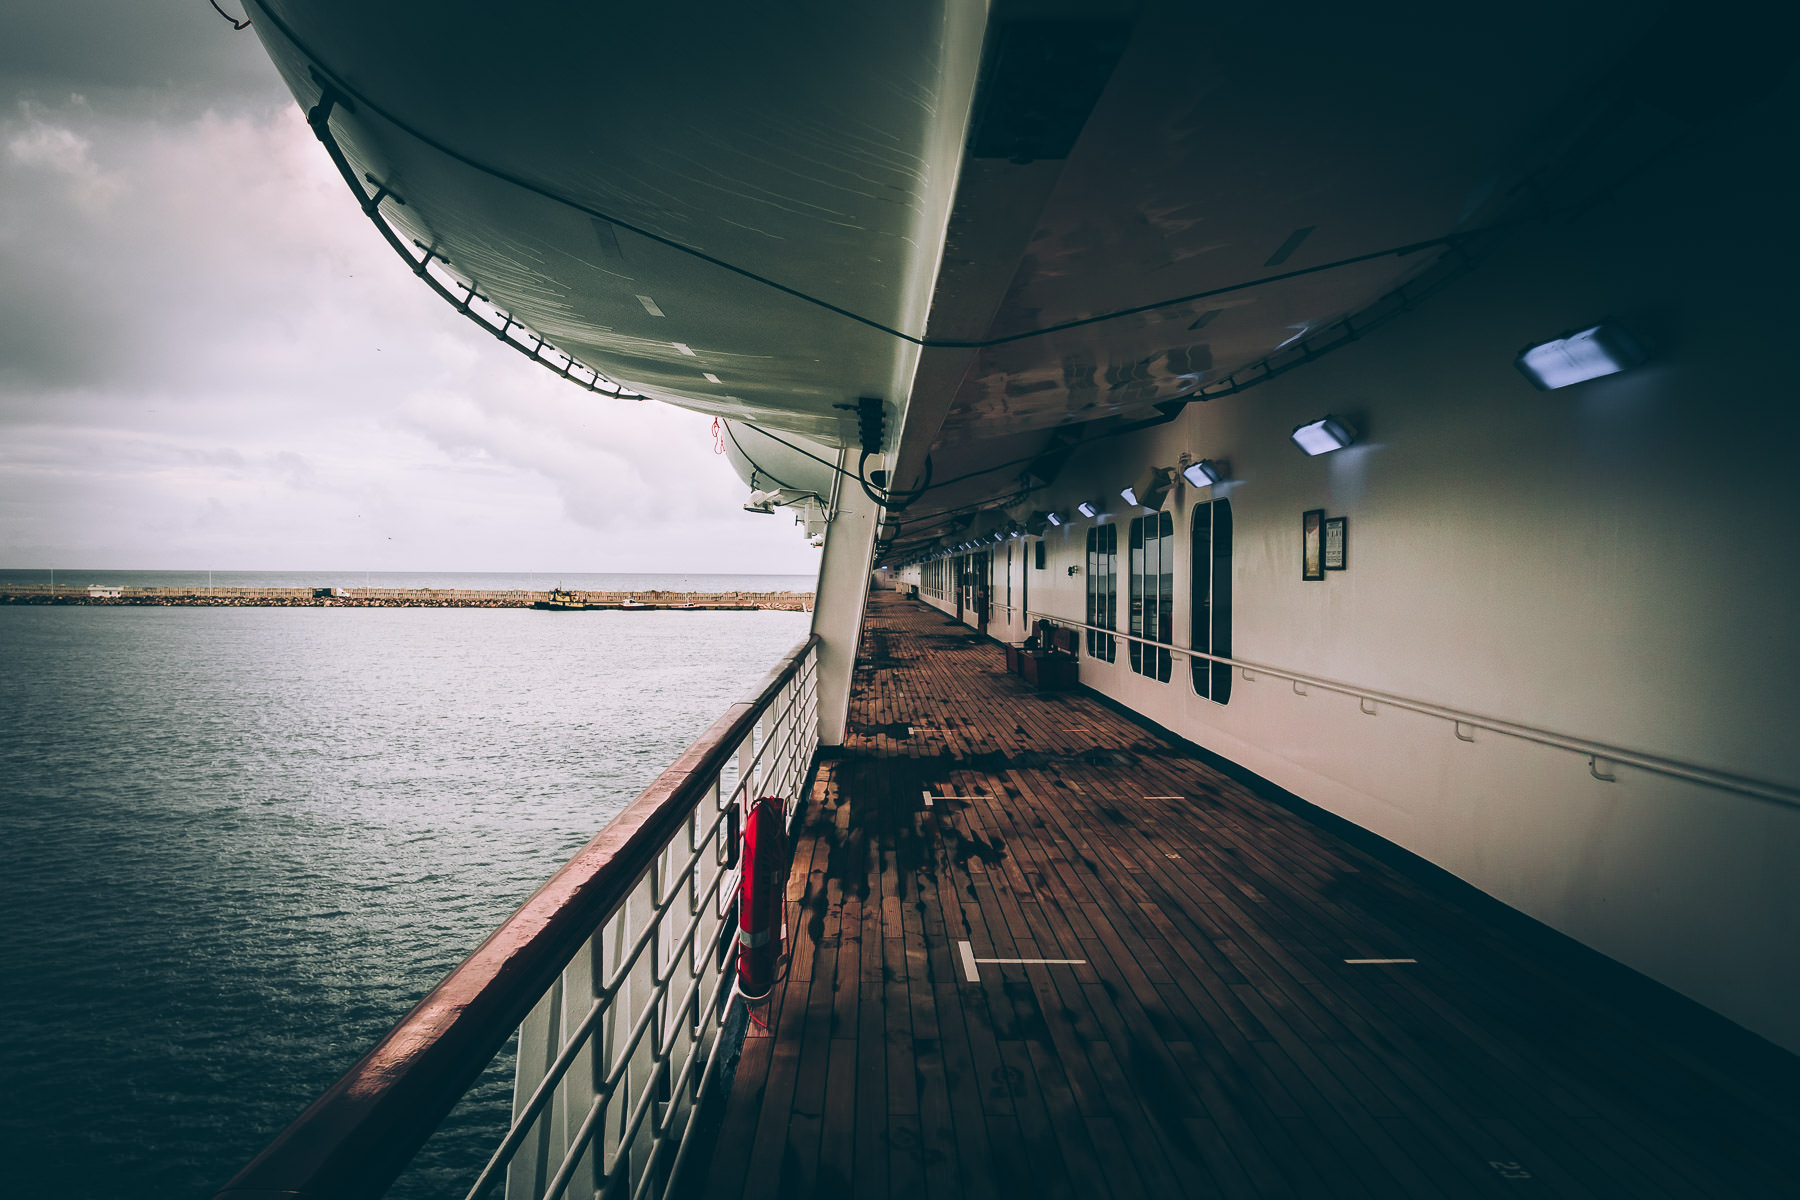 The port side of deck 3 of the cruise shipCarnival Triumph while docked in Progreso, Mexico, on an overcast day.